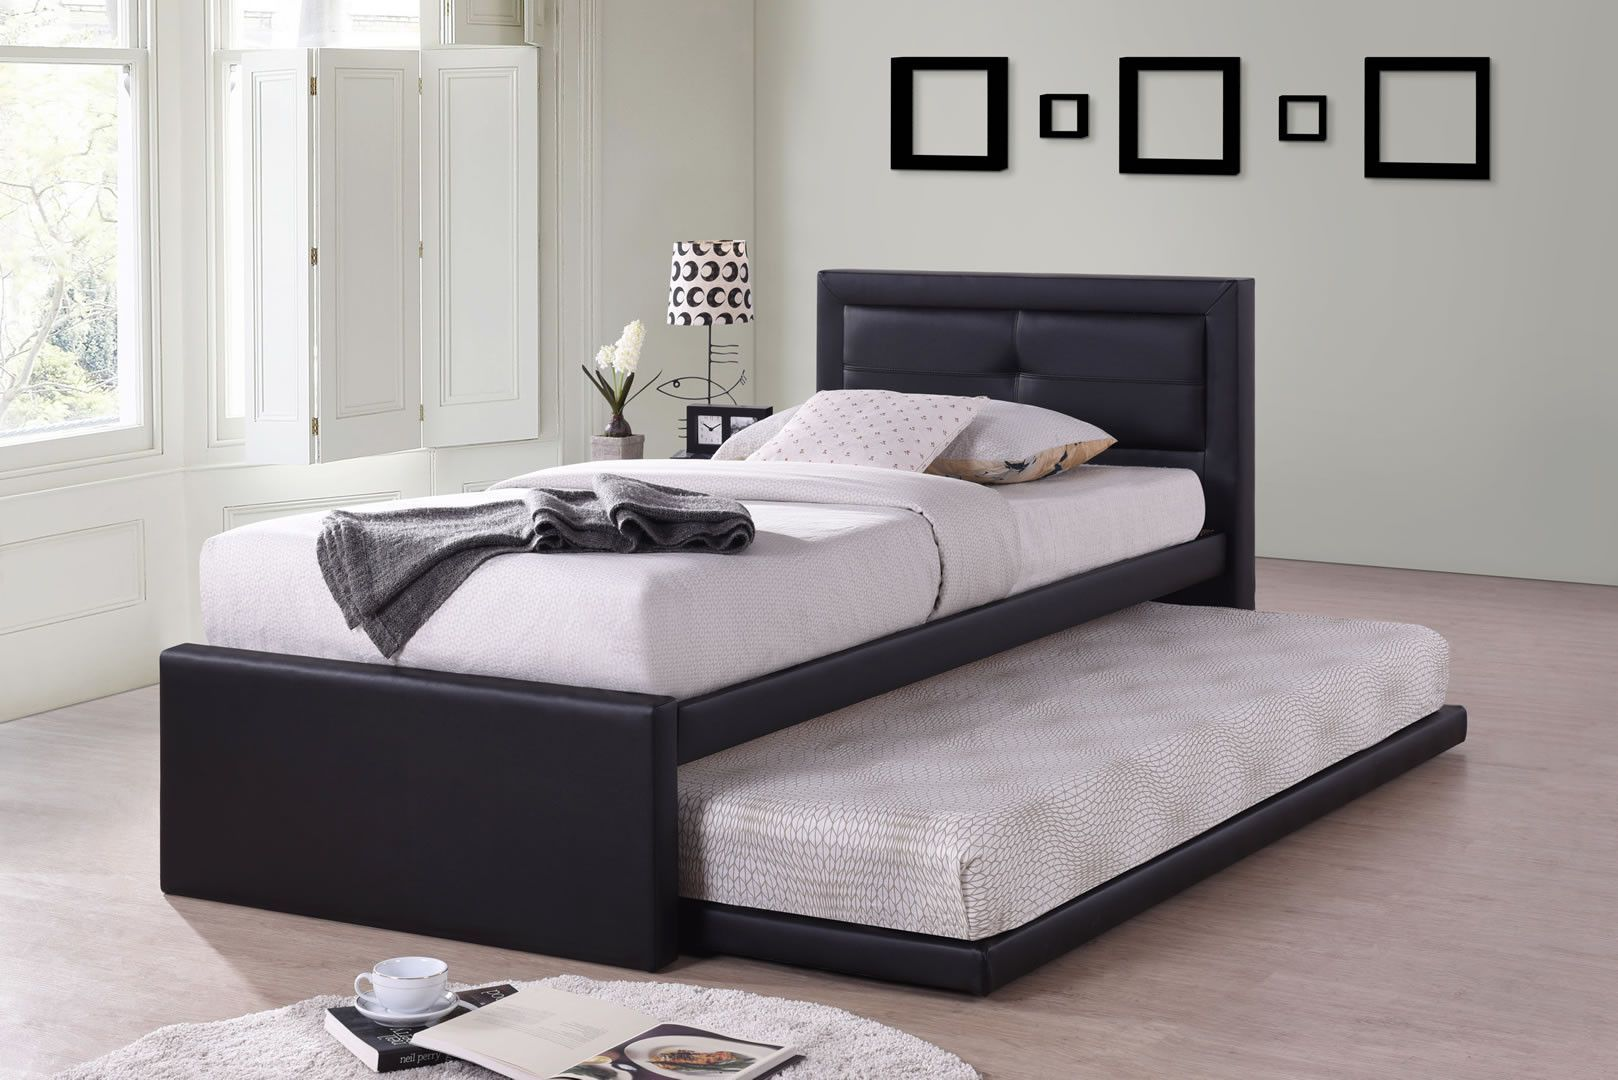 lits enfants lit 1 personne avec tiroir lit ruben noir. Black Bedroom Furniture Sets. Home Design Ideas